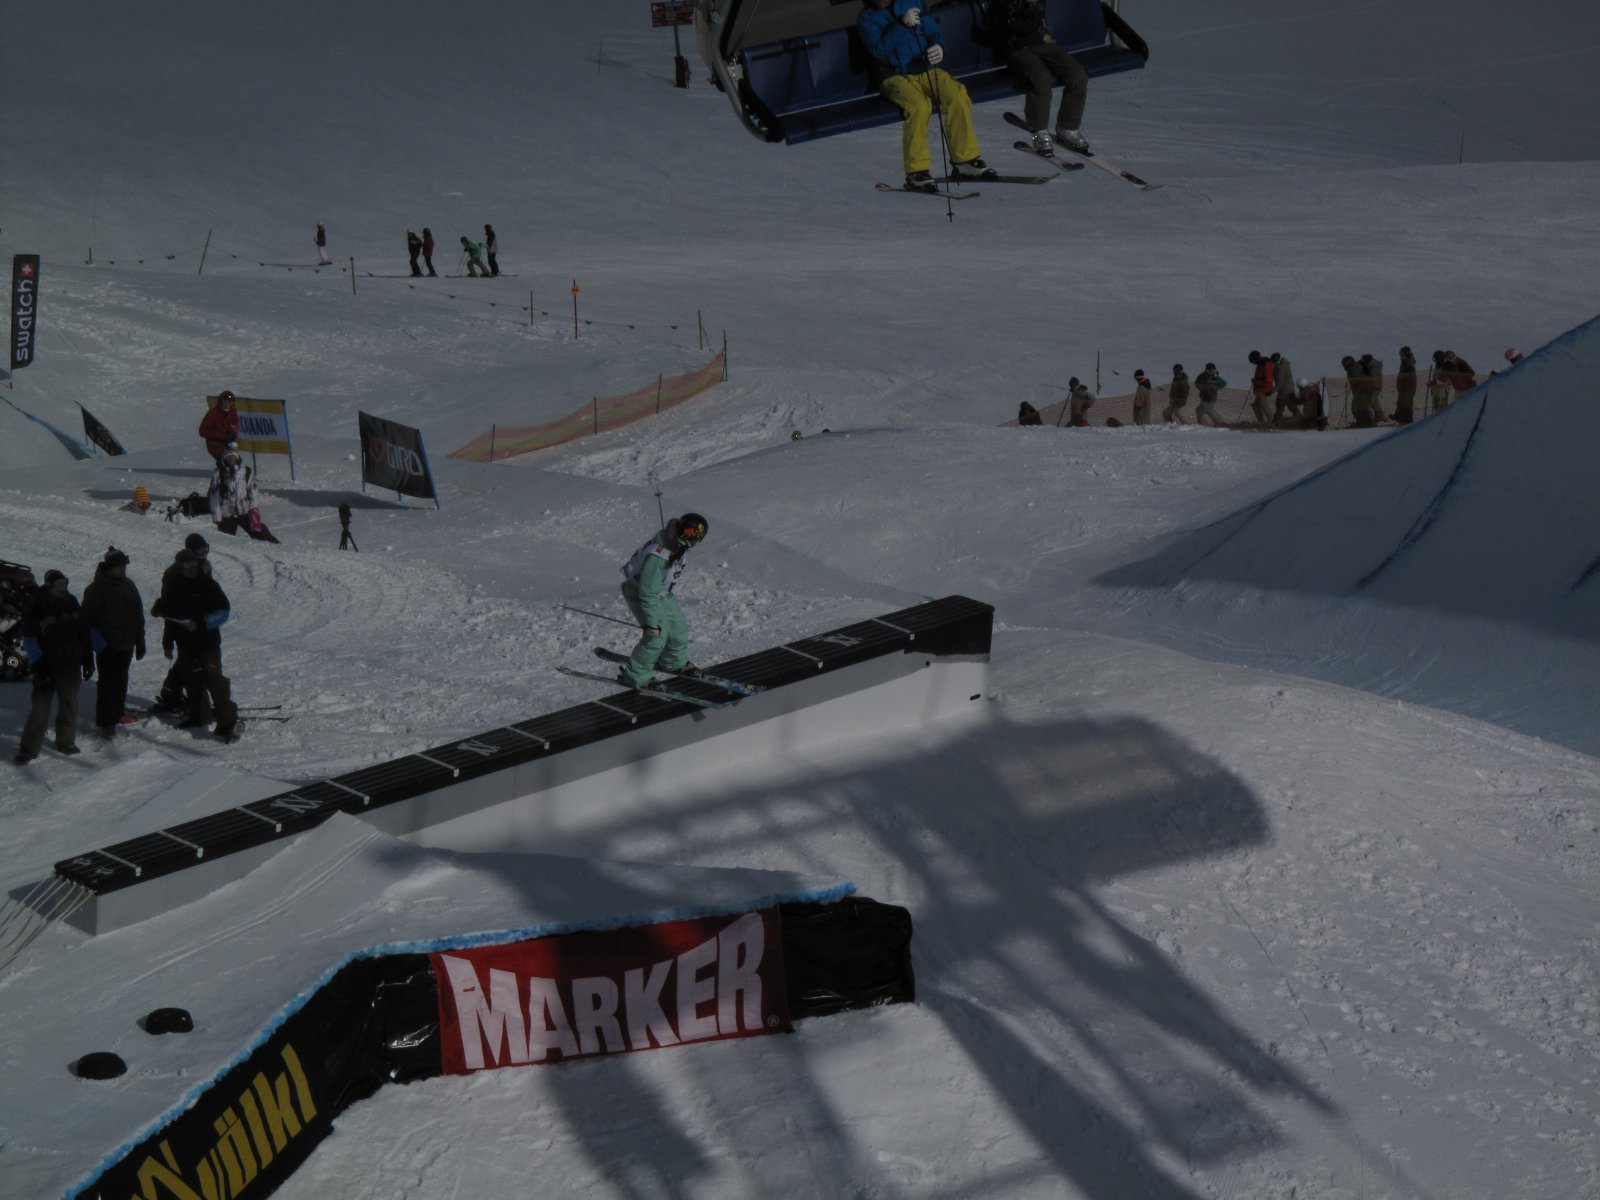 Laax - 2 of 2